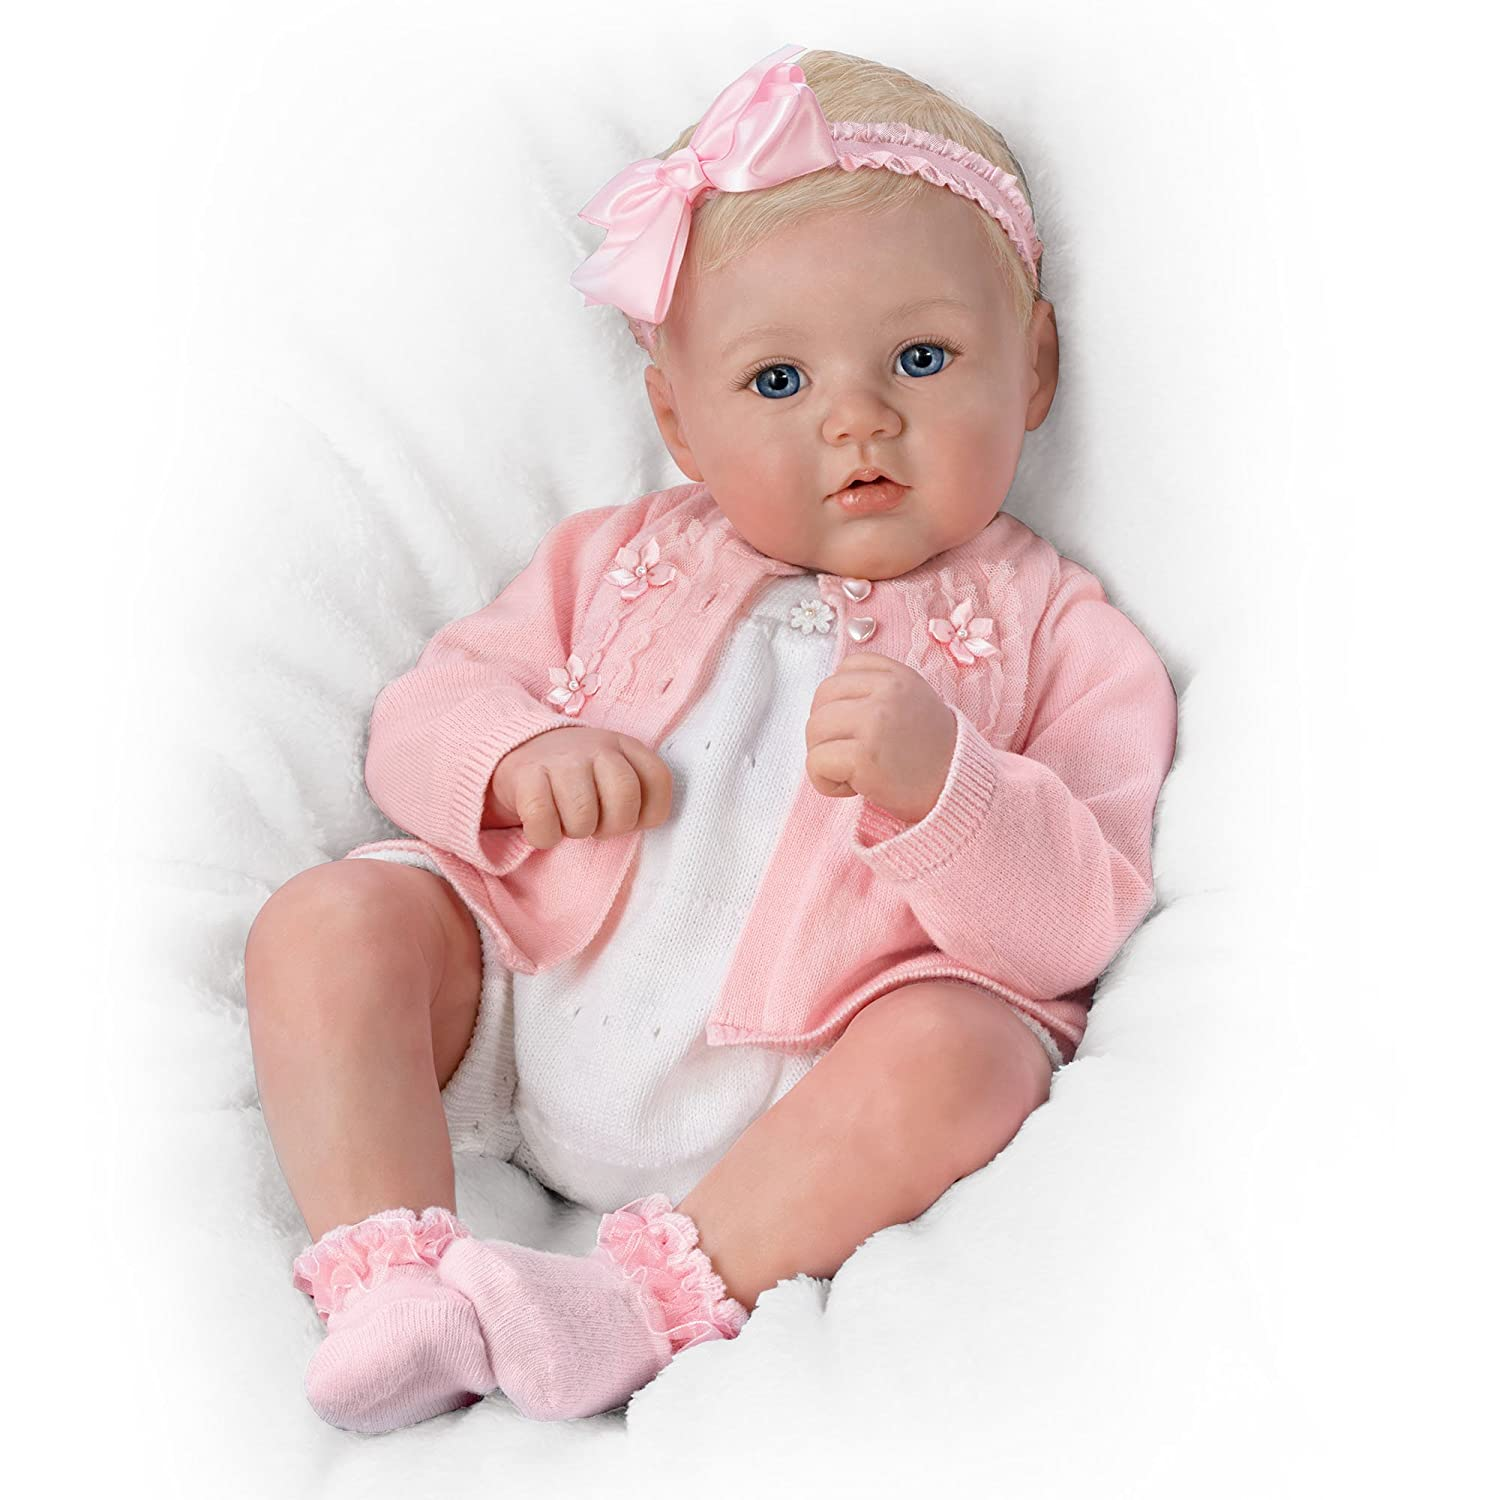 Ashton Drake The born Baby Girl Doll 'Perfect In Pink Annika Marissa May RealTouch® Realistic Vinyl Skin